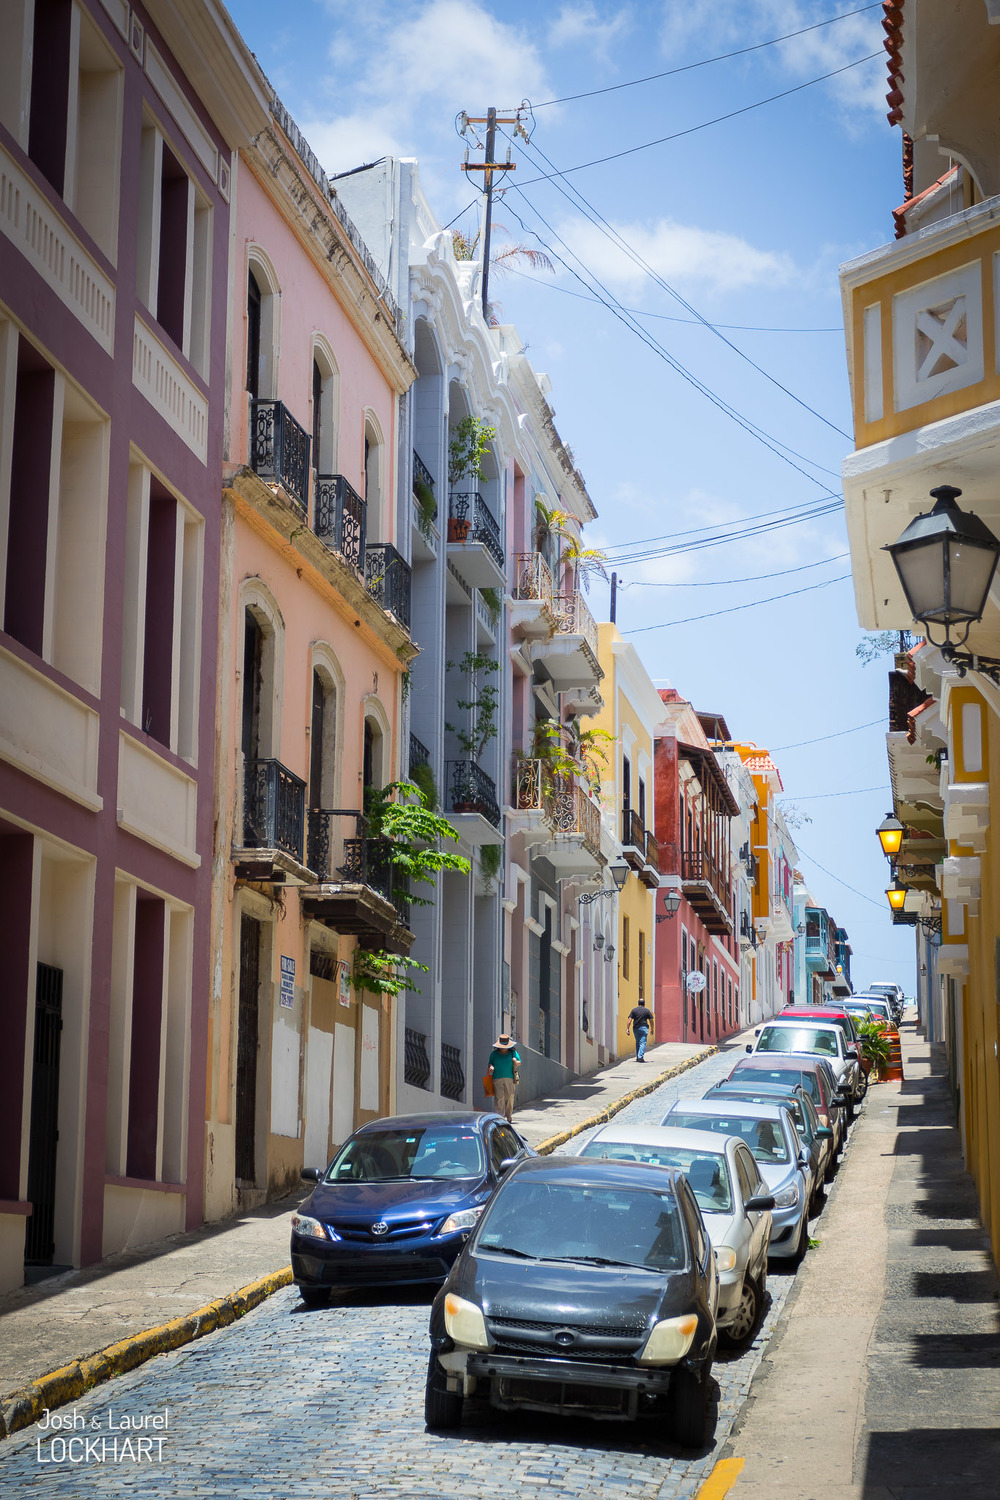 lockhart-travel-puertorico-8.jpg